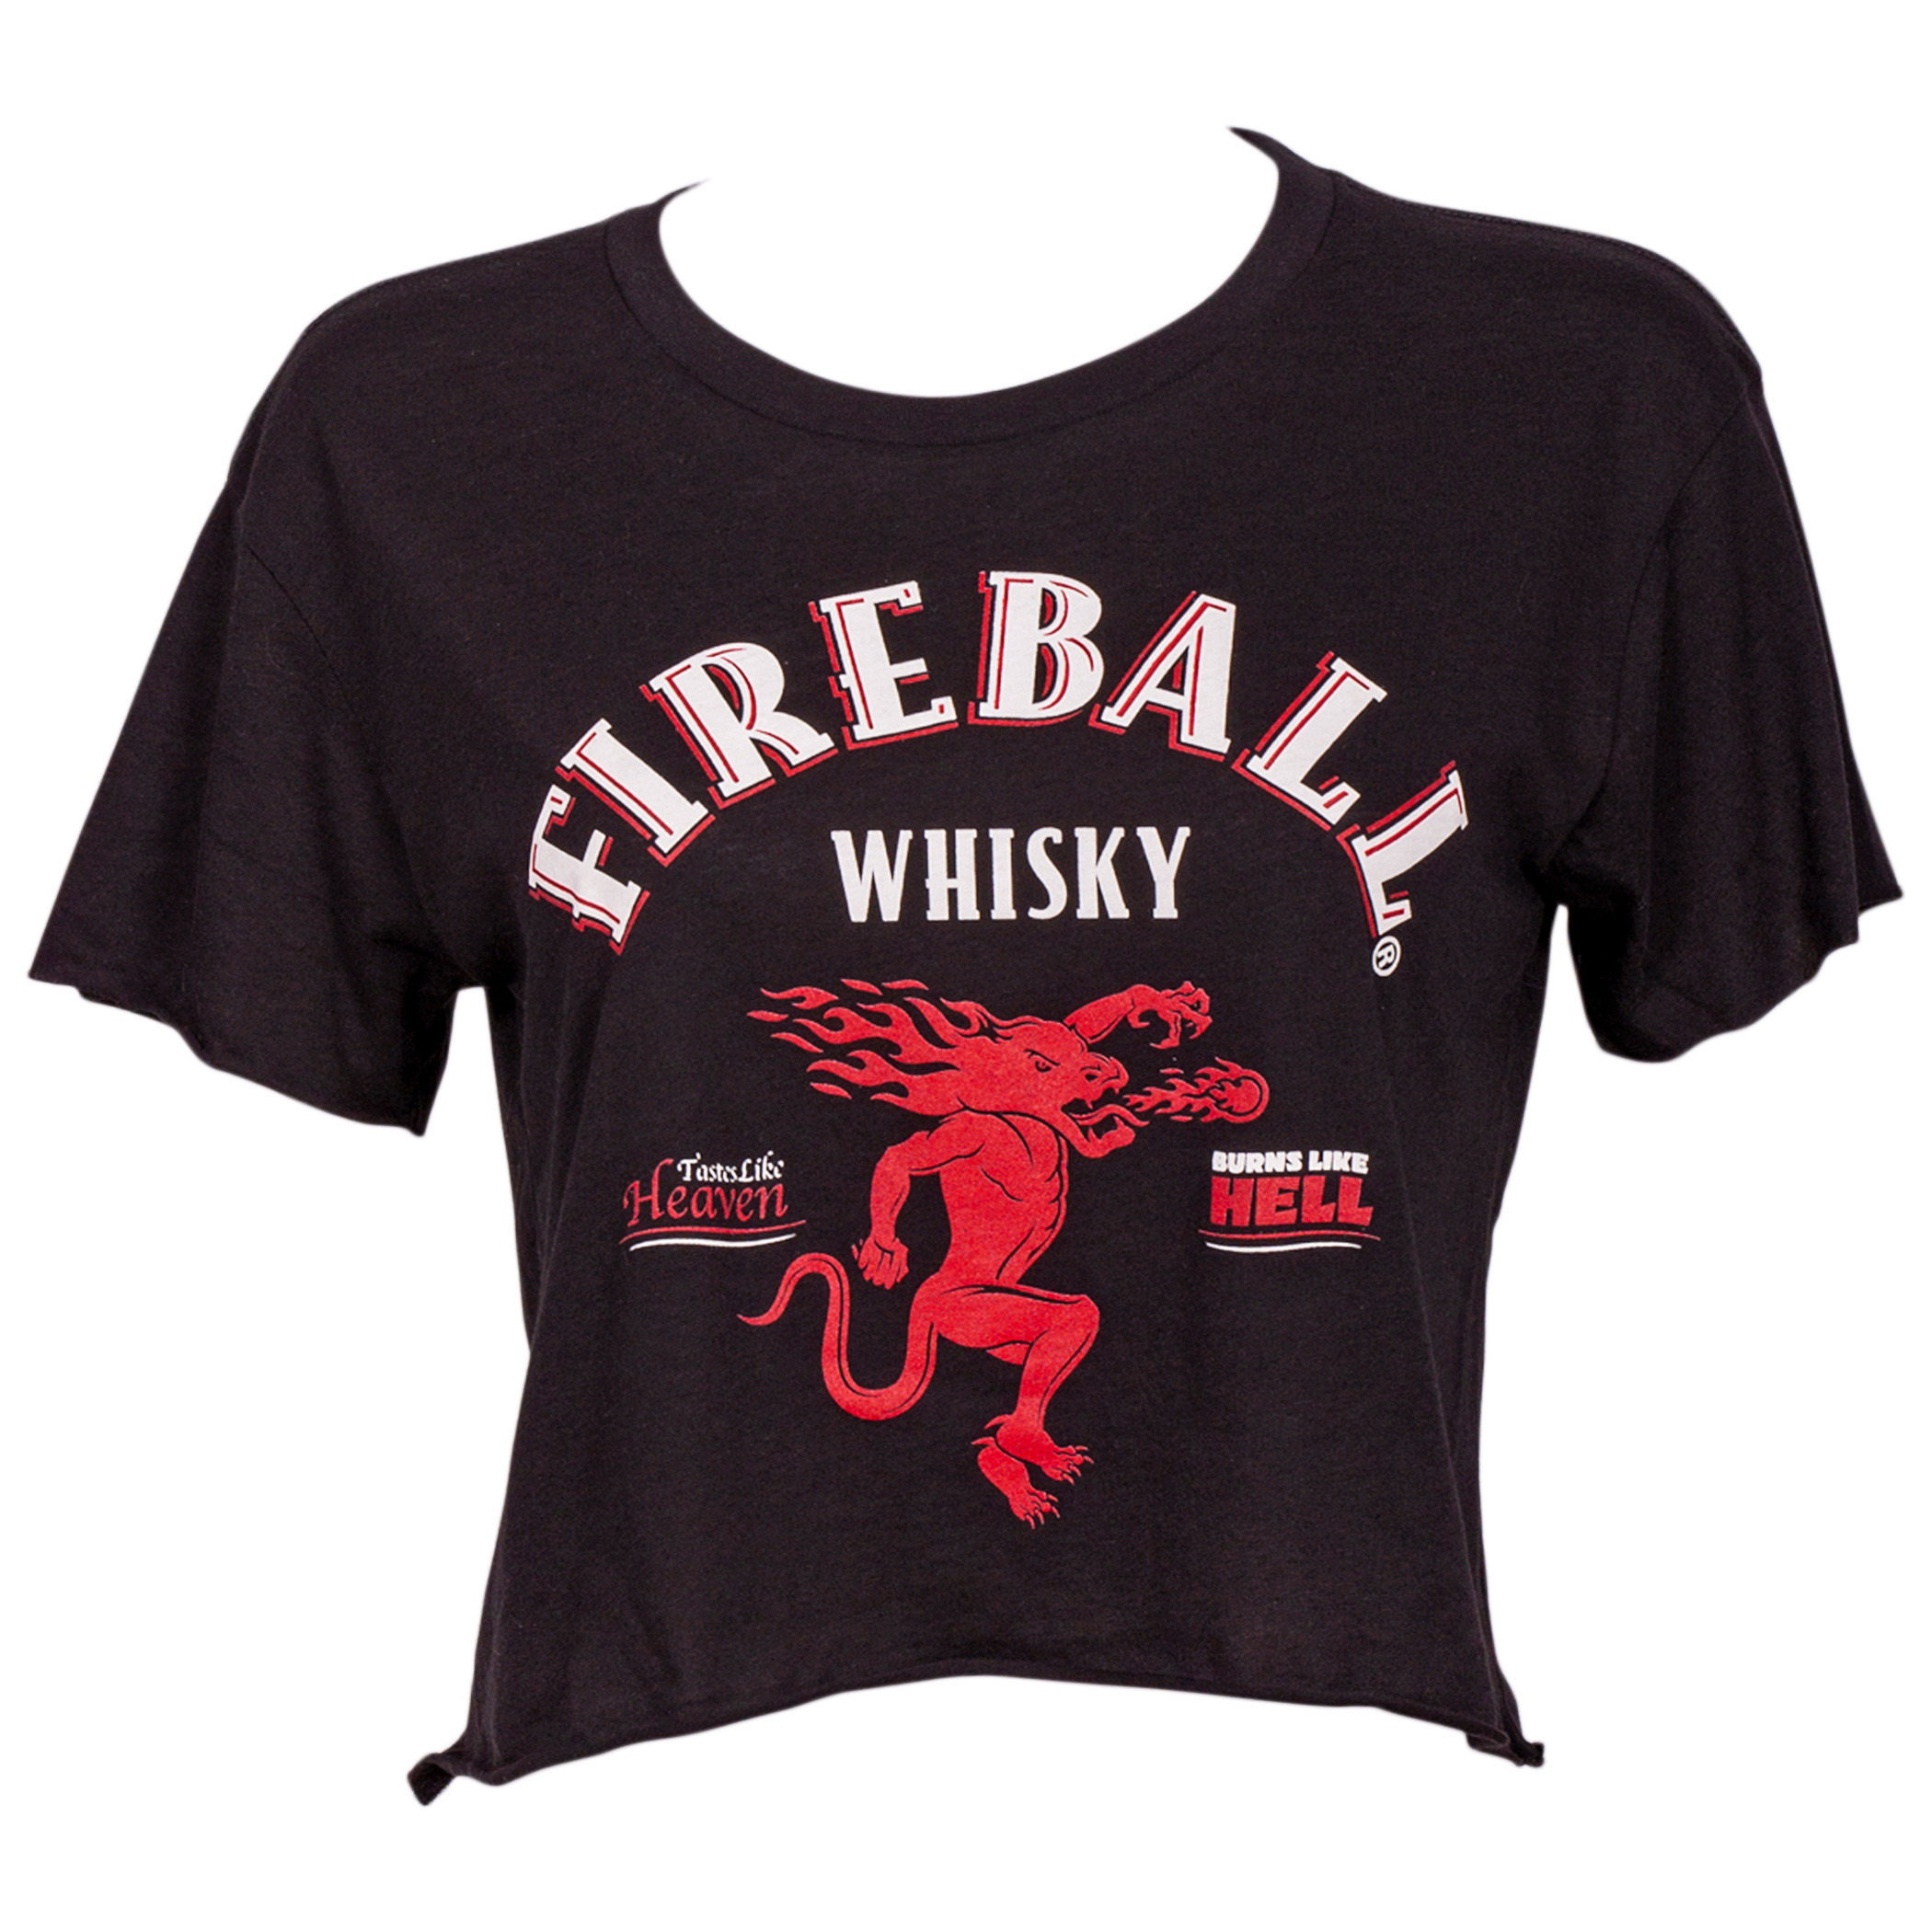 Fireball Whisky Women's Crop Top T-Shirt